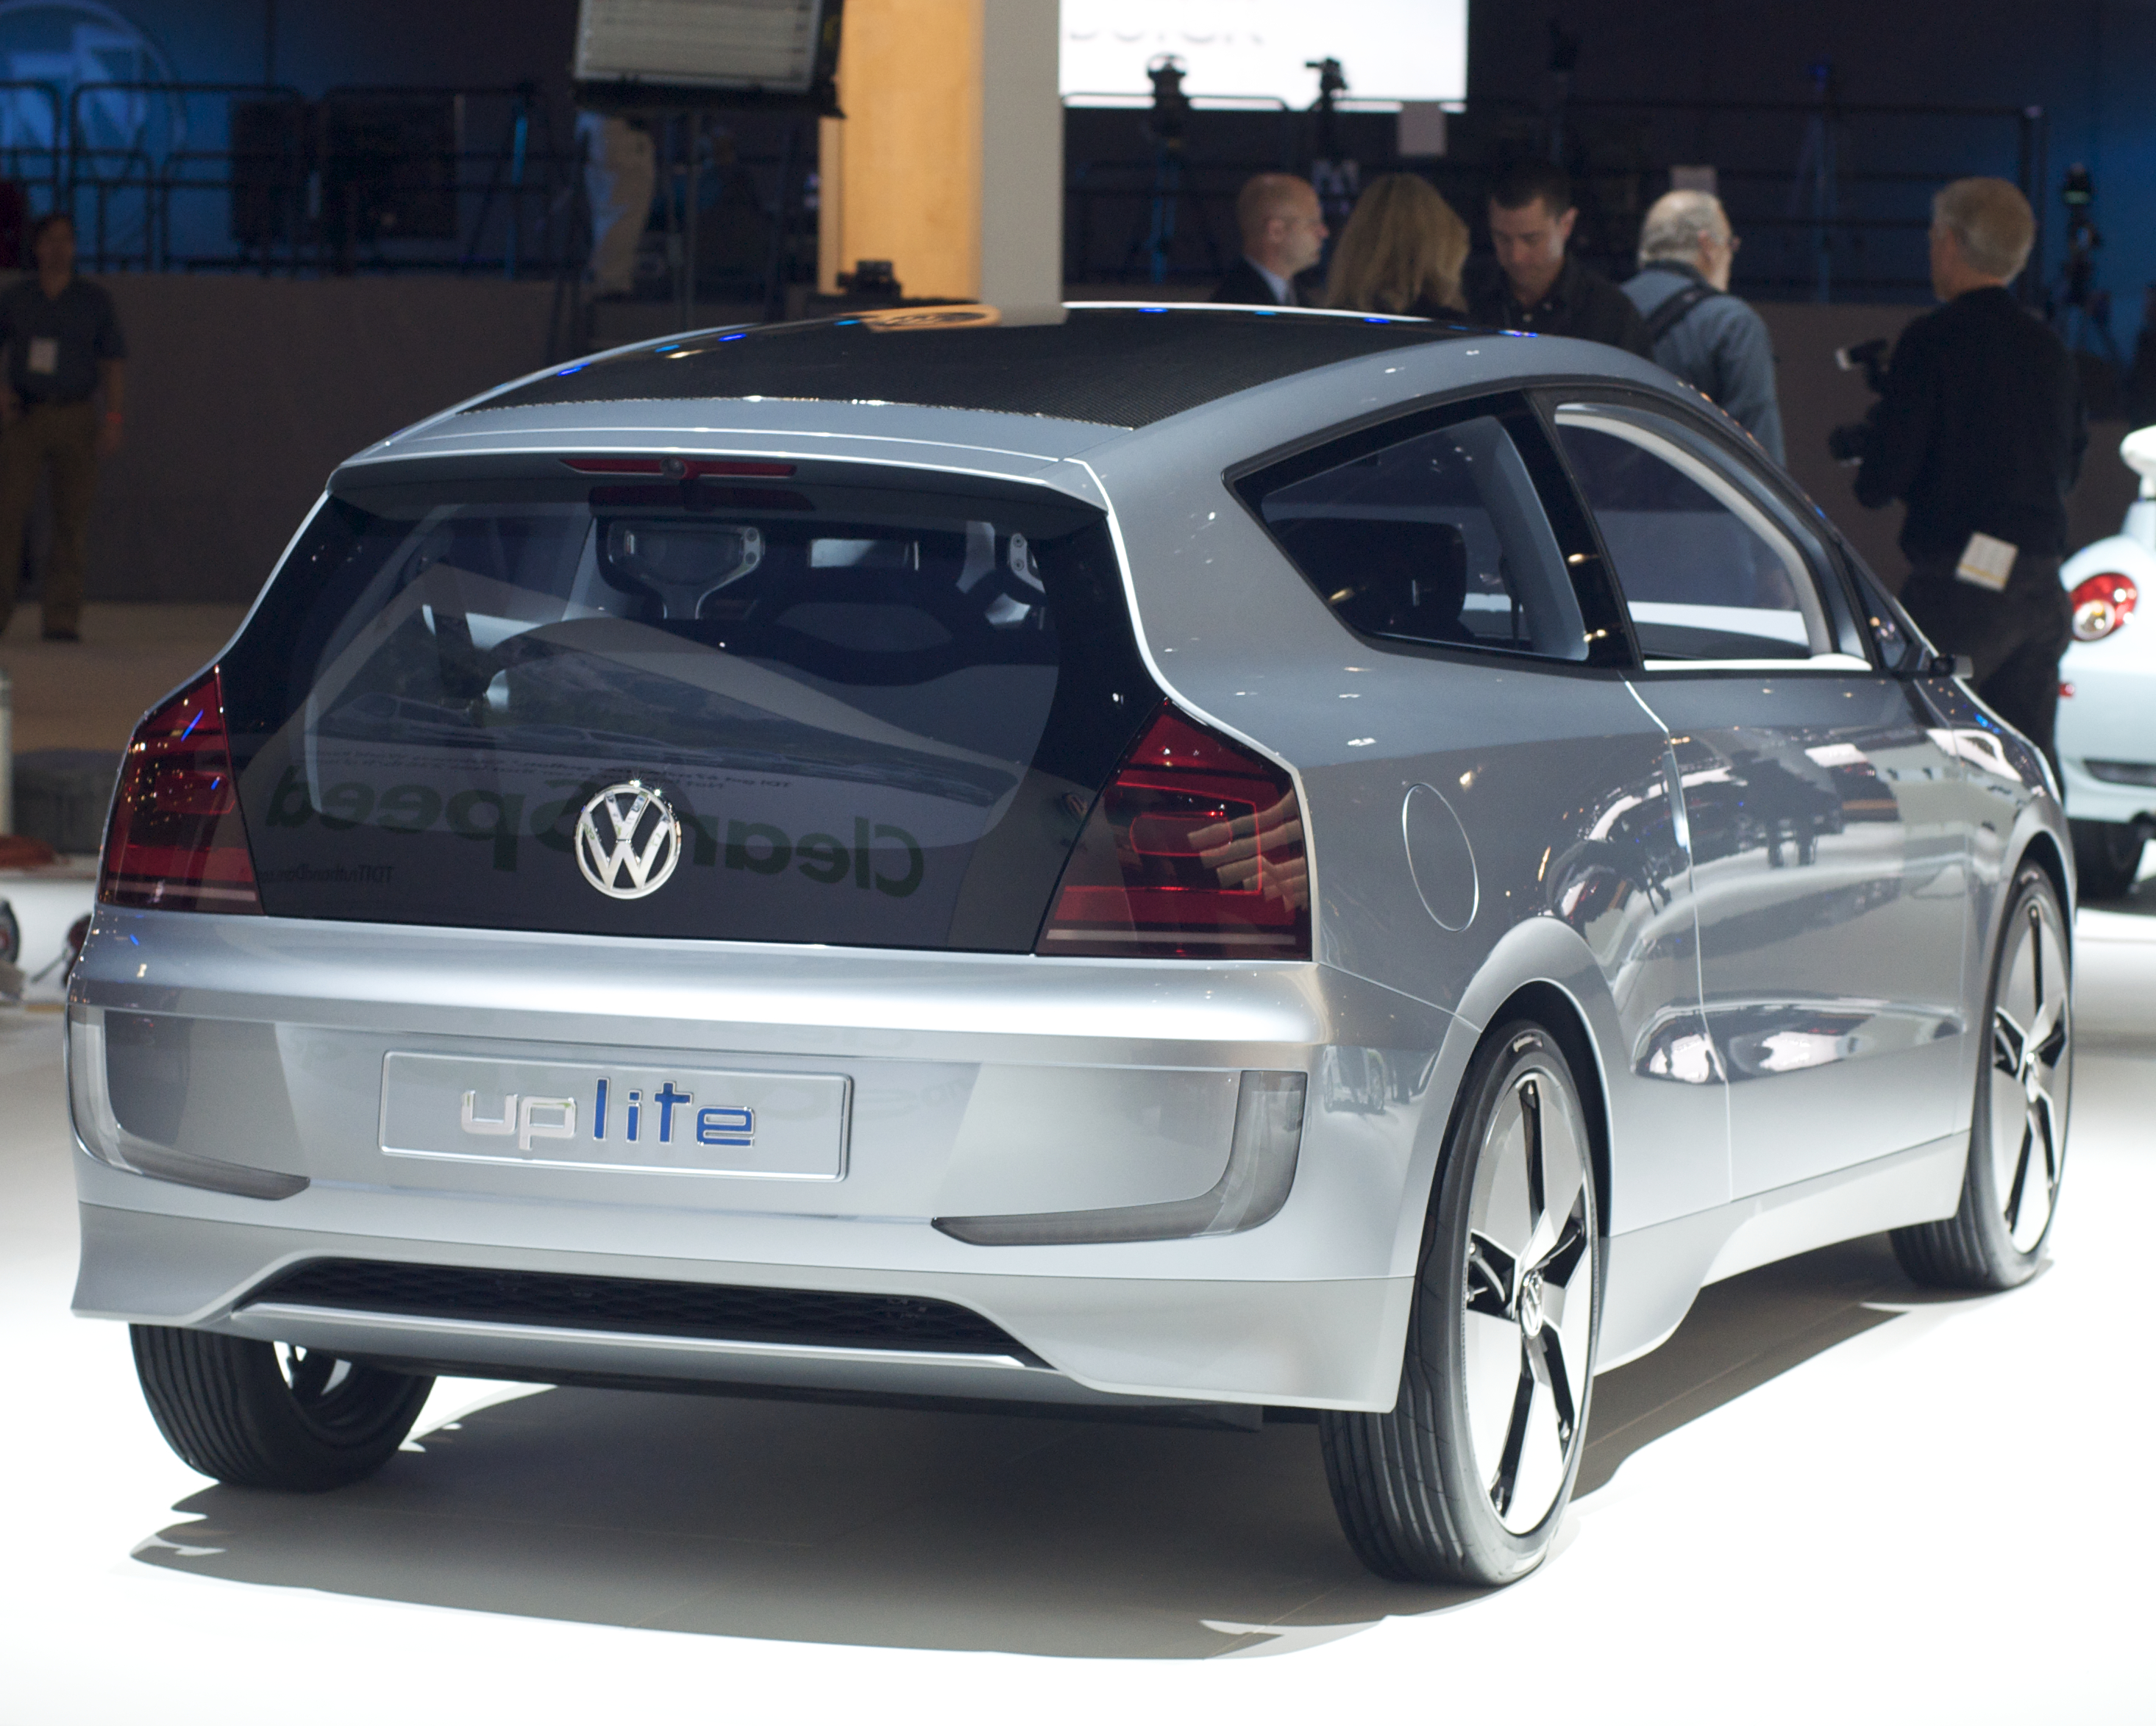 VW lite up! photo 02